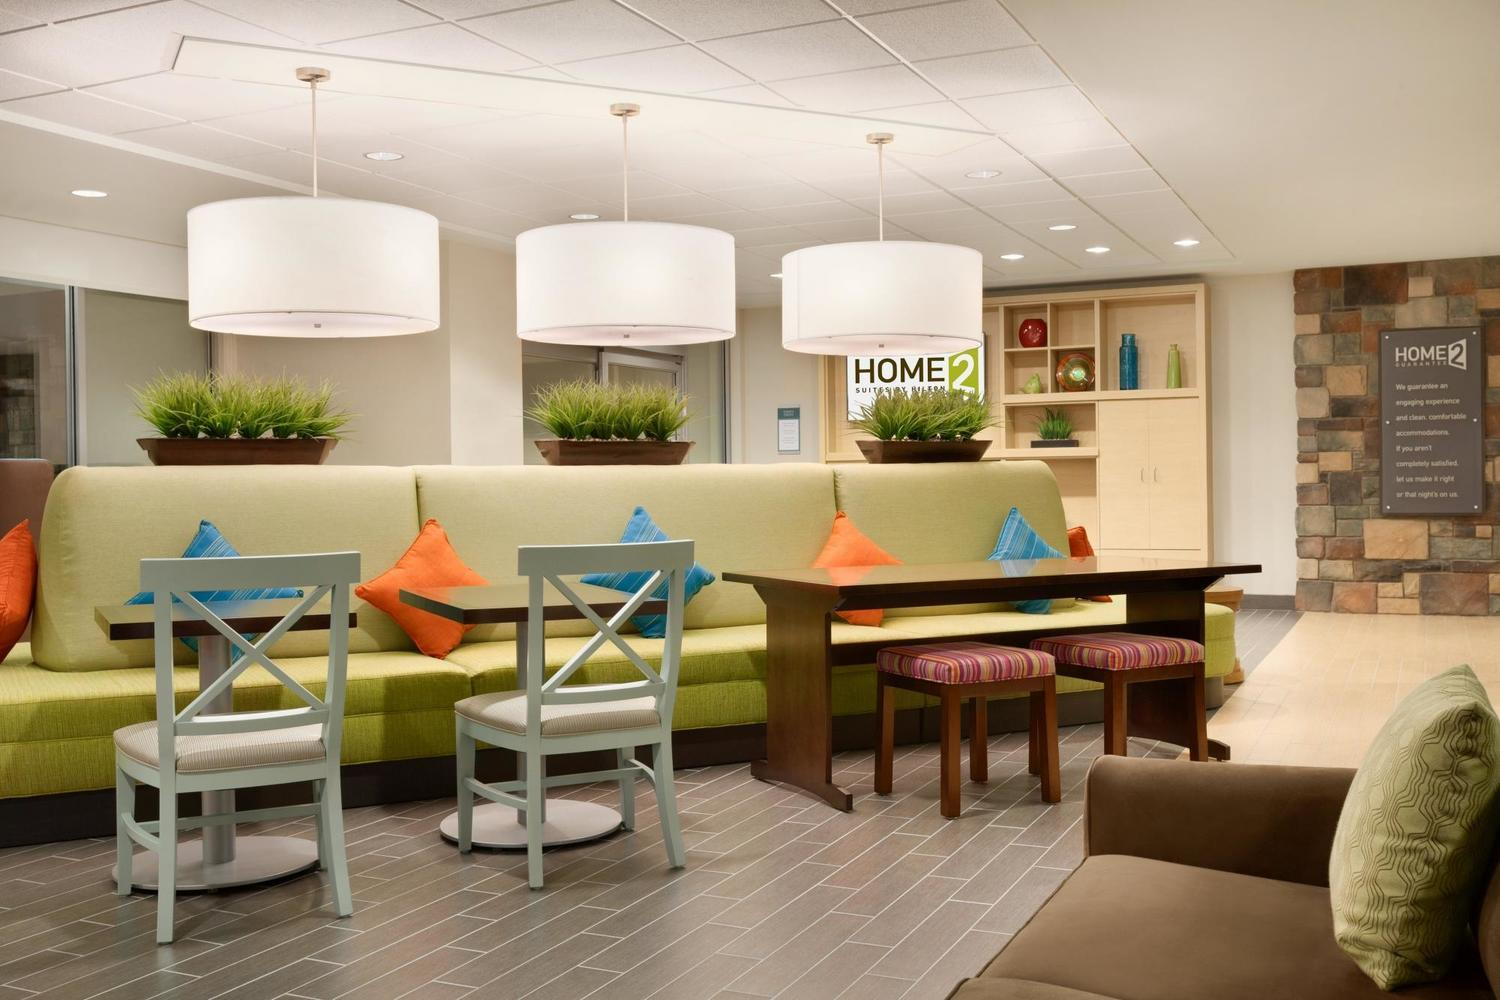 Home2 Suites By Hilton Seattle Airport  Seattle  Wa Jobs